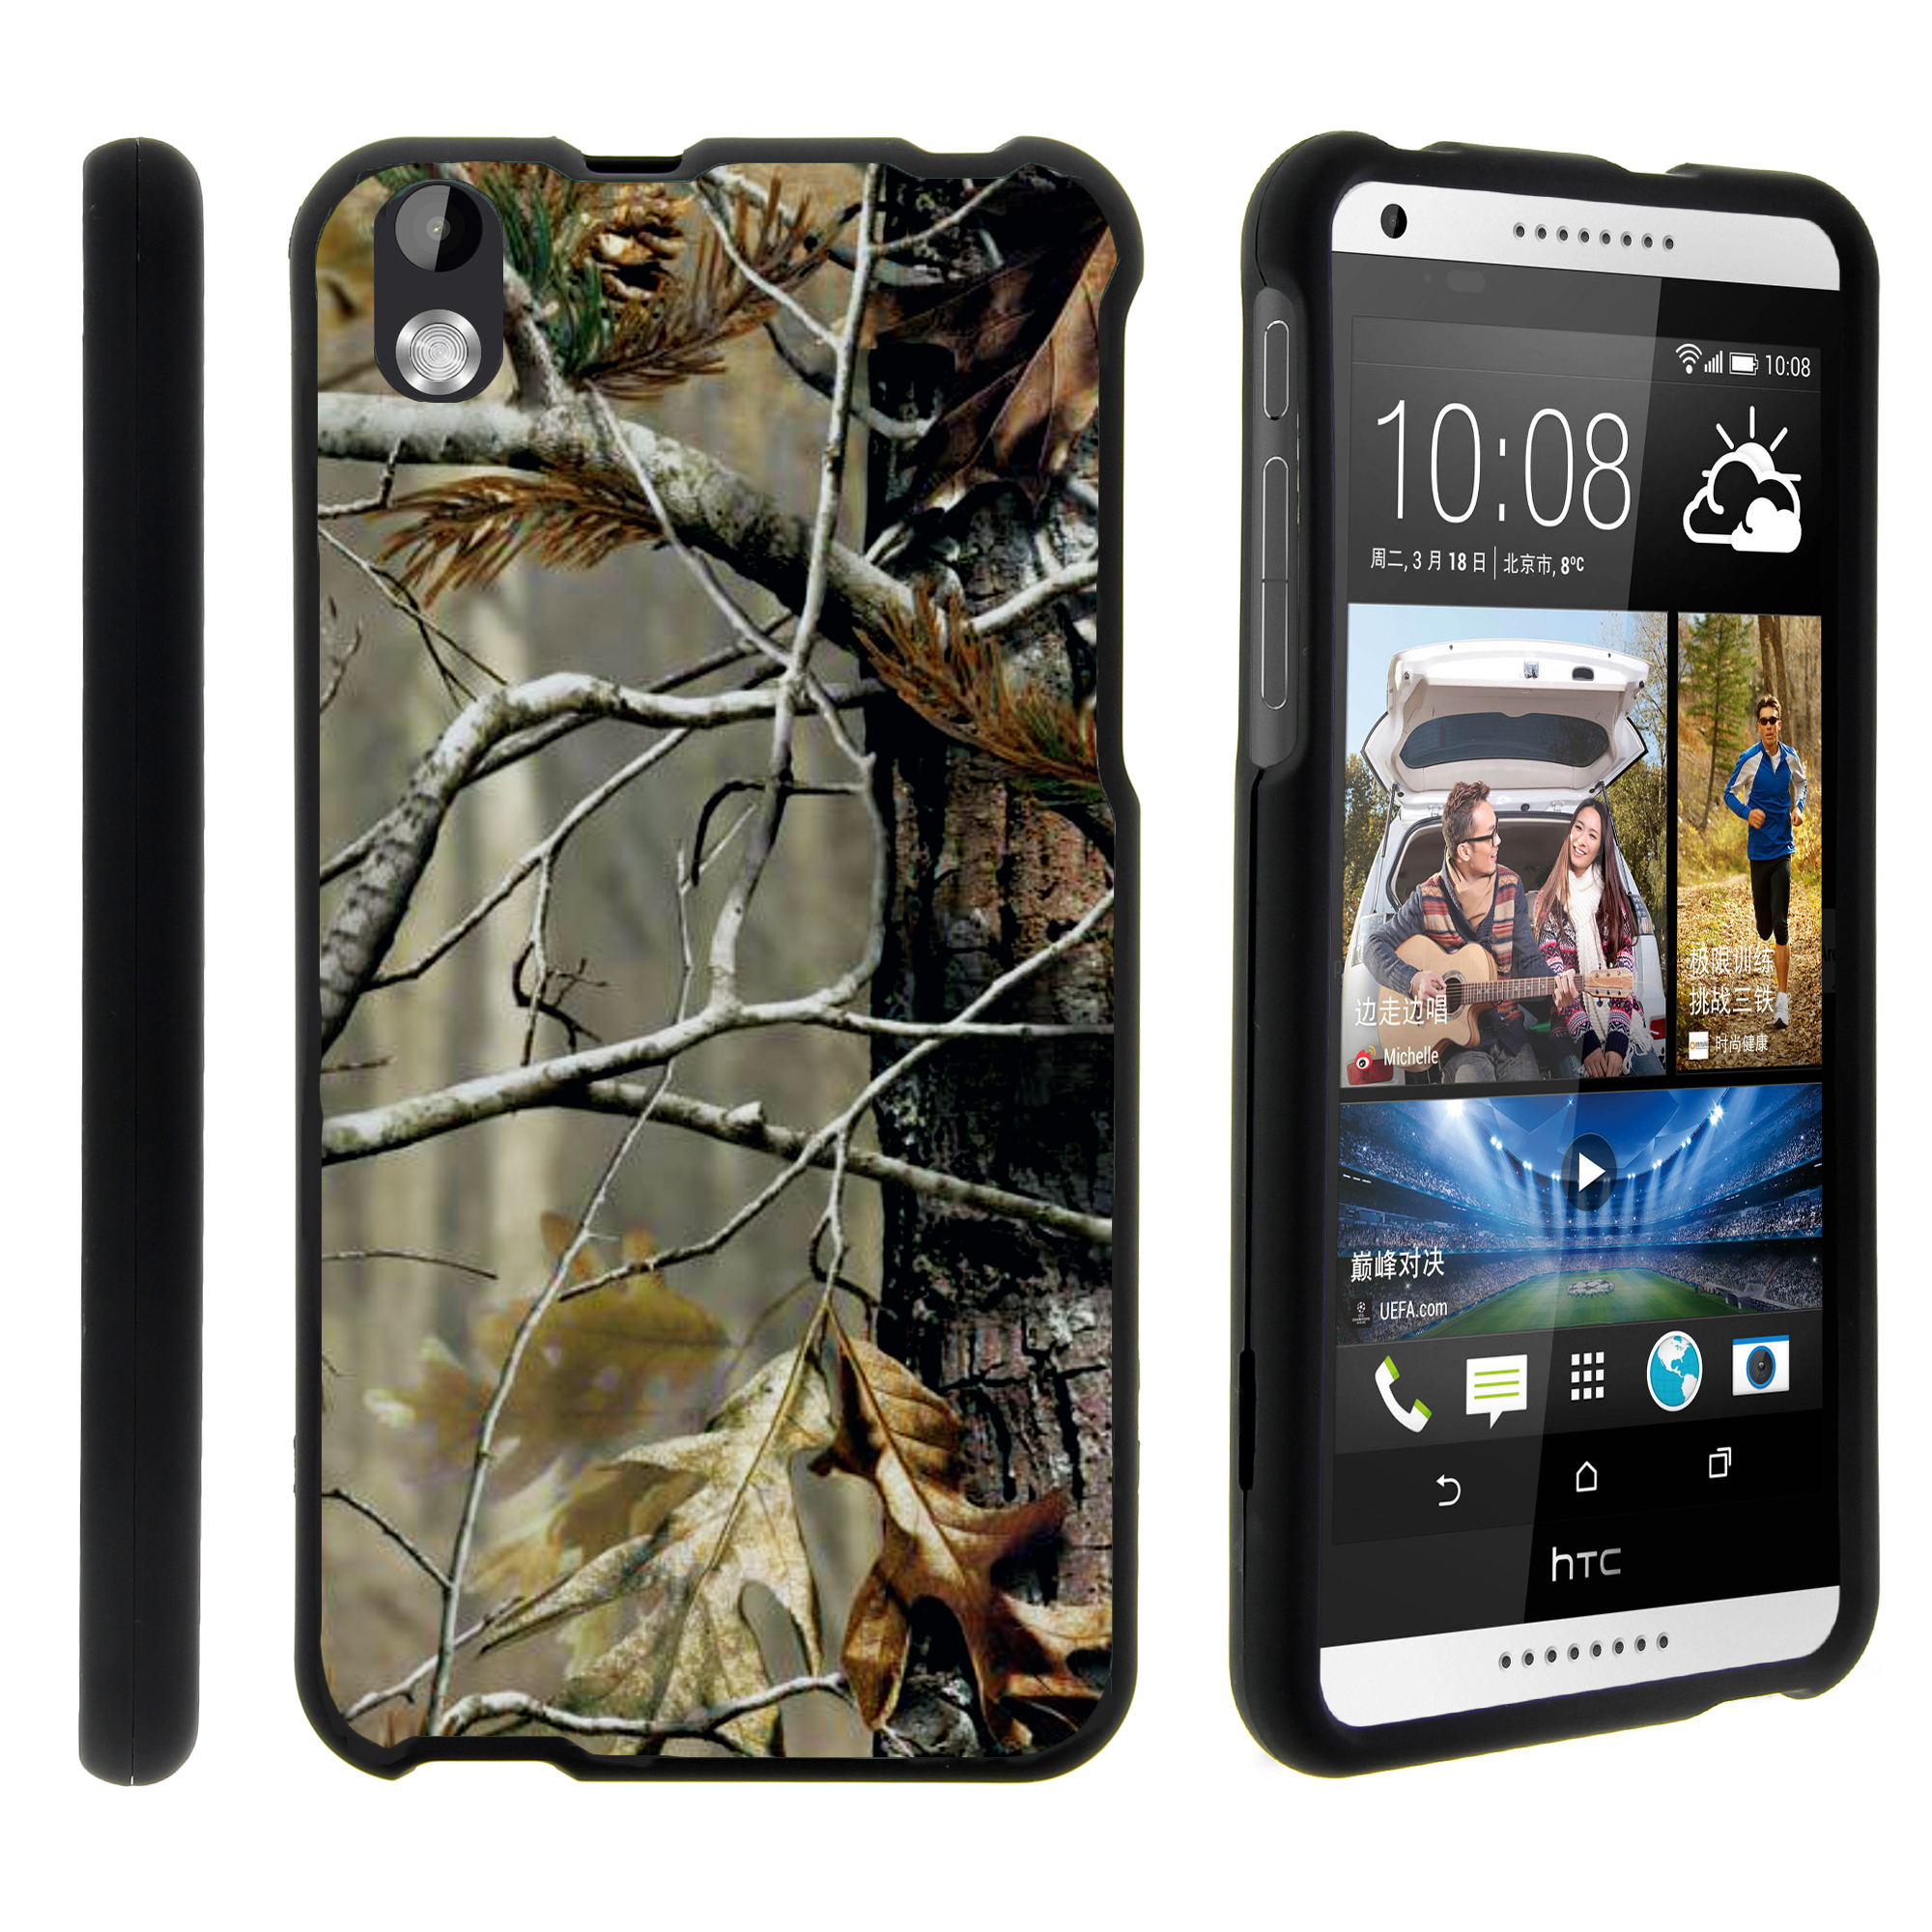 HTC Desire 816, [SNAP SHELL][Matte Black] 2 Piece Snap On Rubberized Hard Plastic Cell Phone Cover with Cool Designs - Fallen Leaves Camouflage